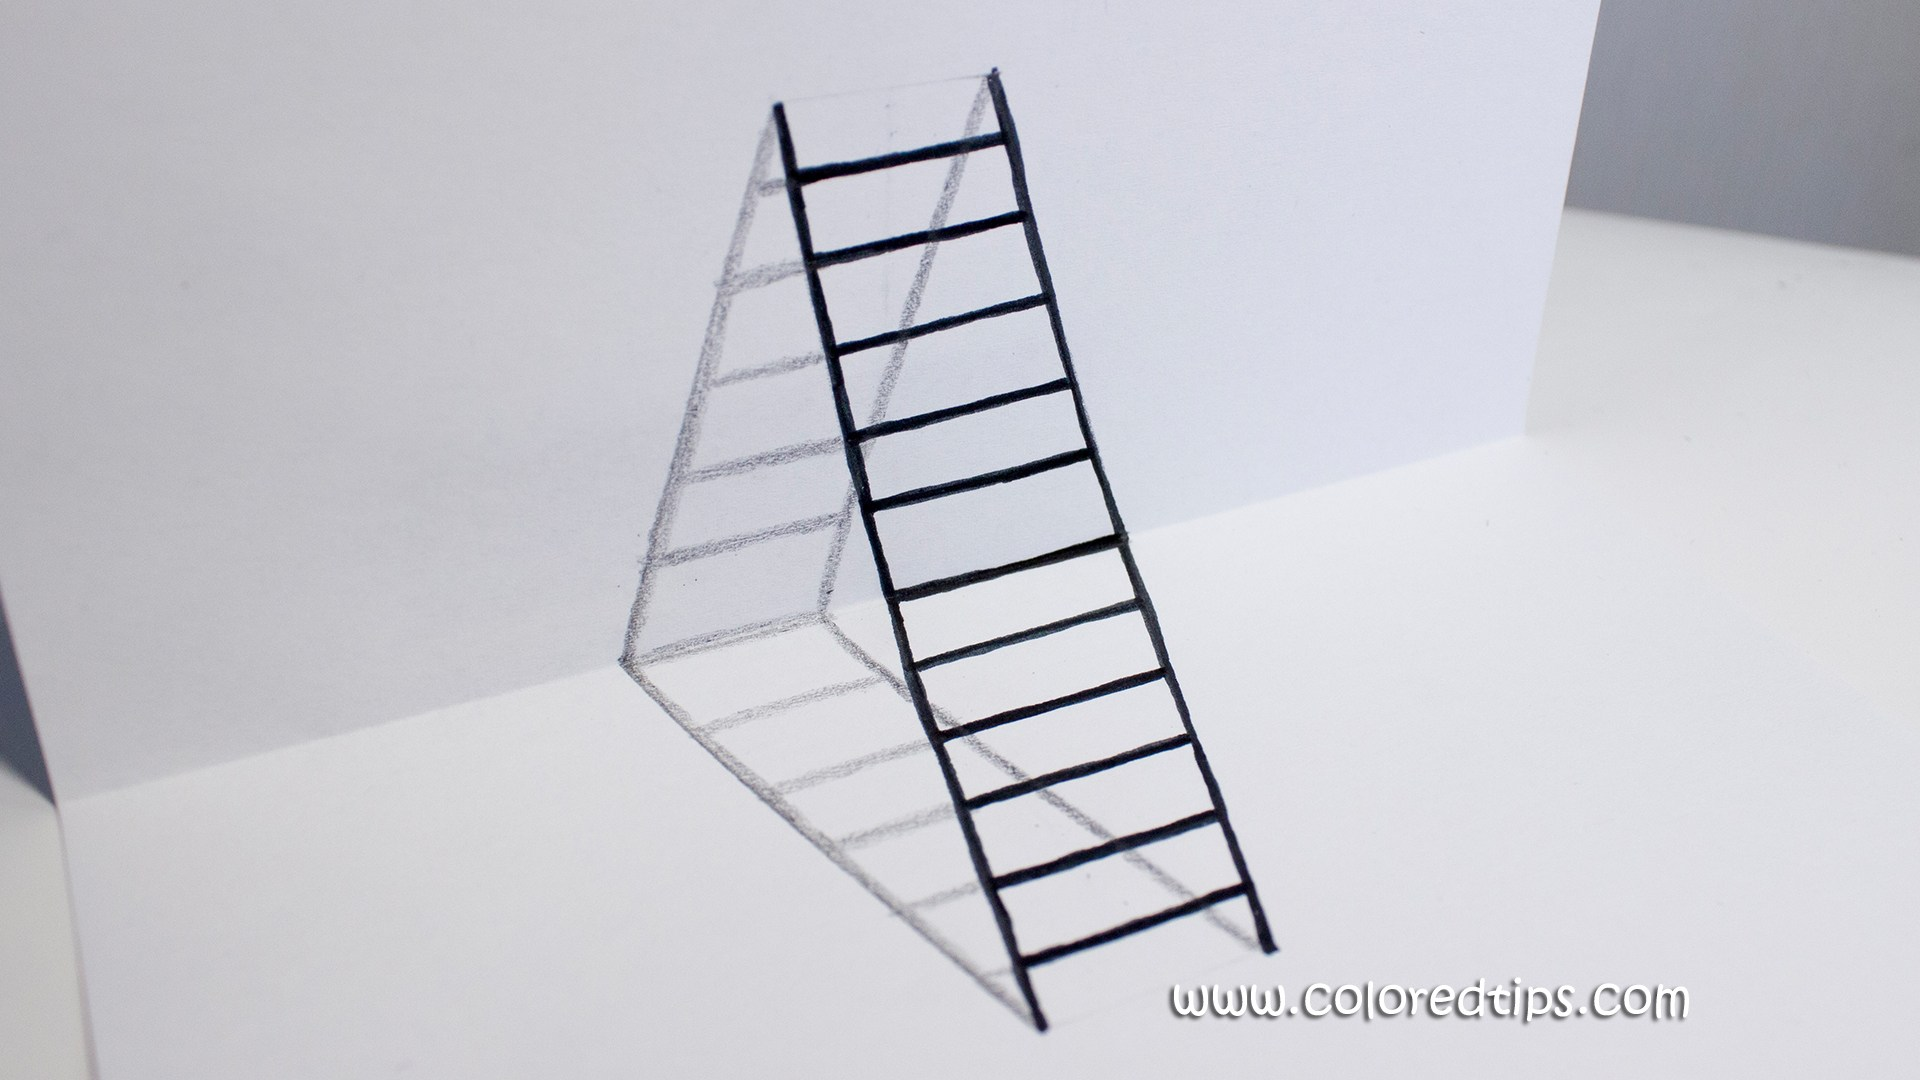 The Process Of Ladder Accessories To Provide Advantages